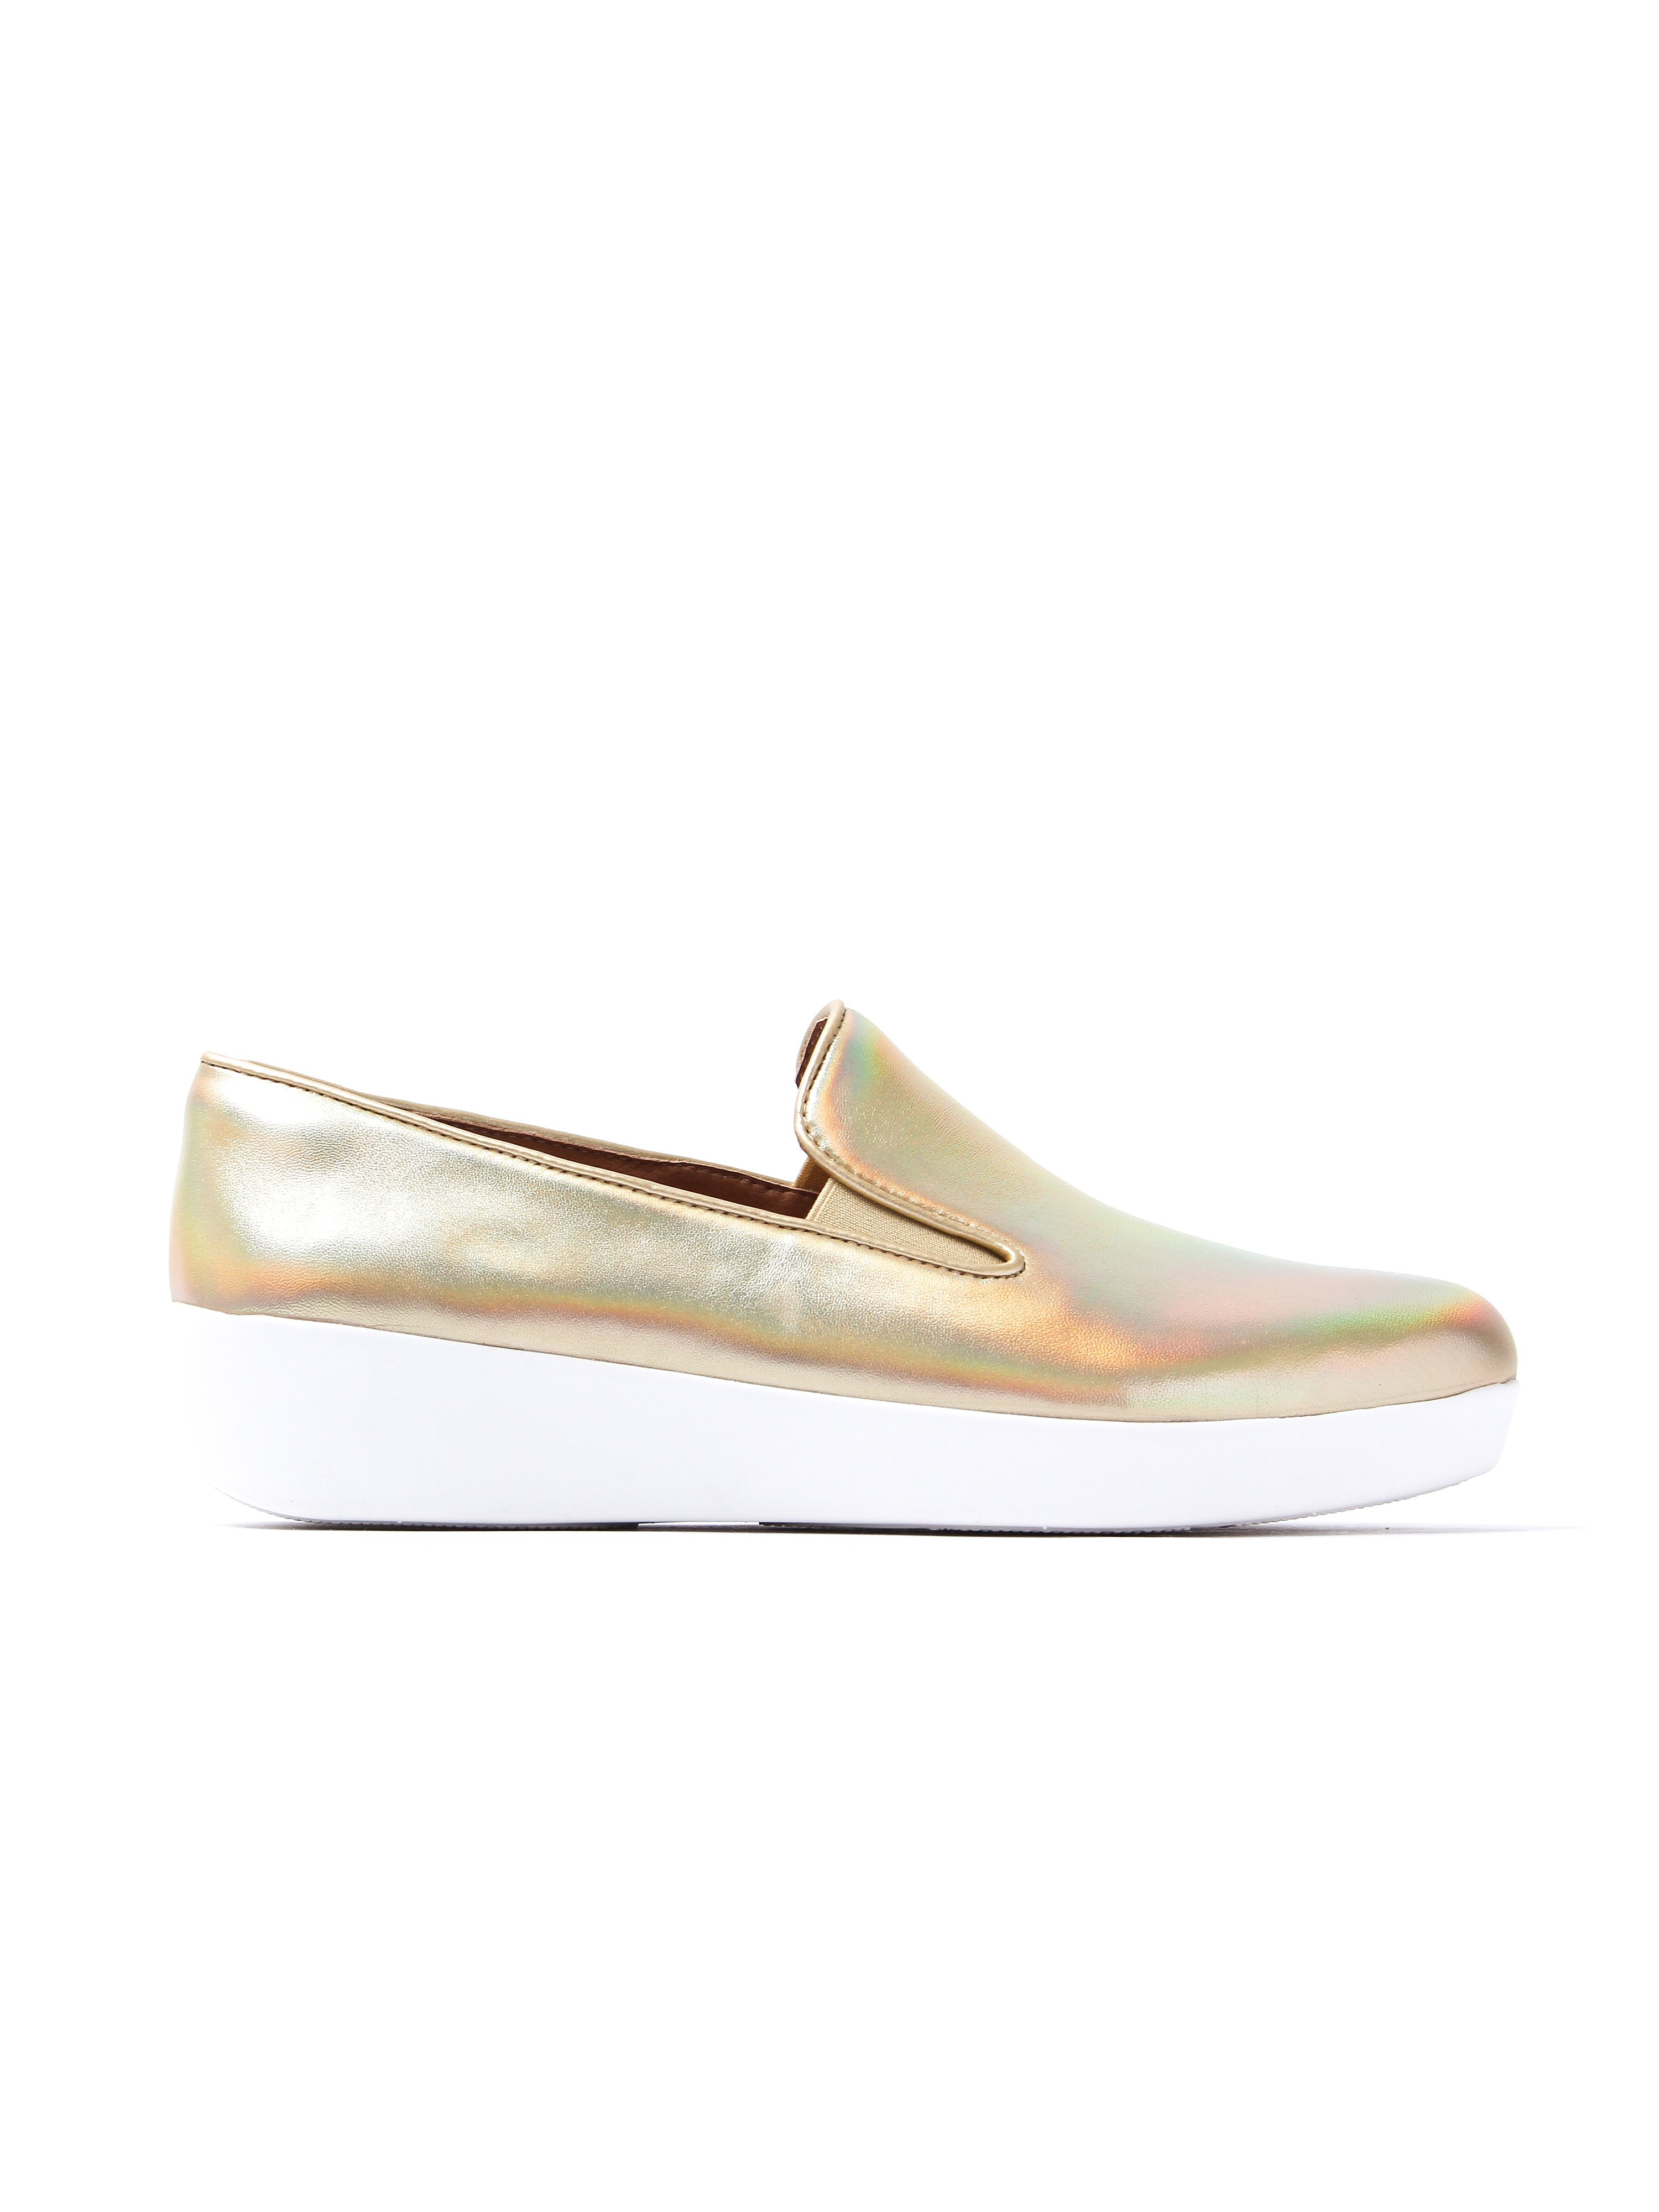 FitFlop Women's Superskate Loafers - Gold Iridescent